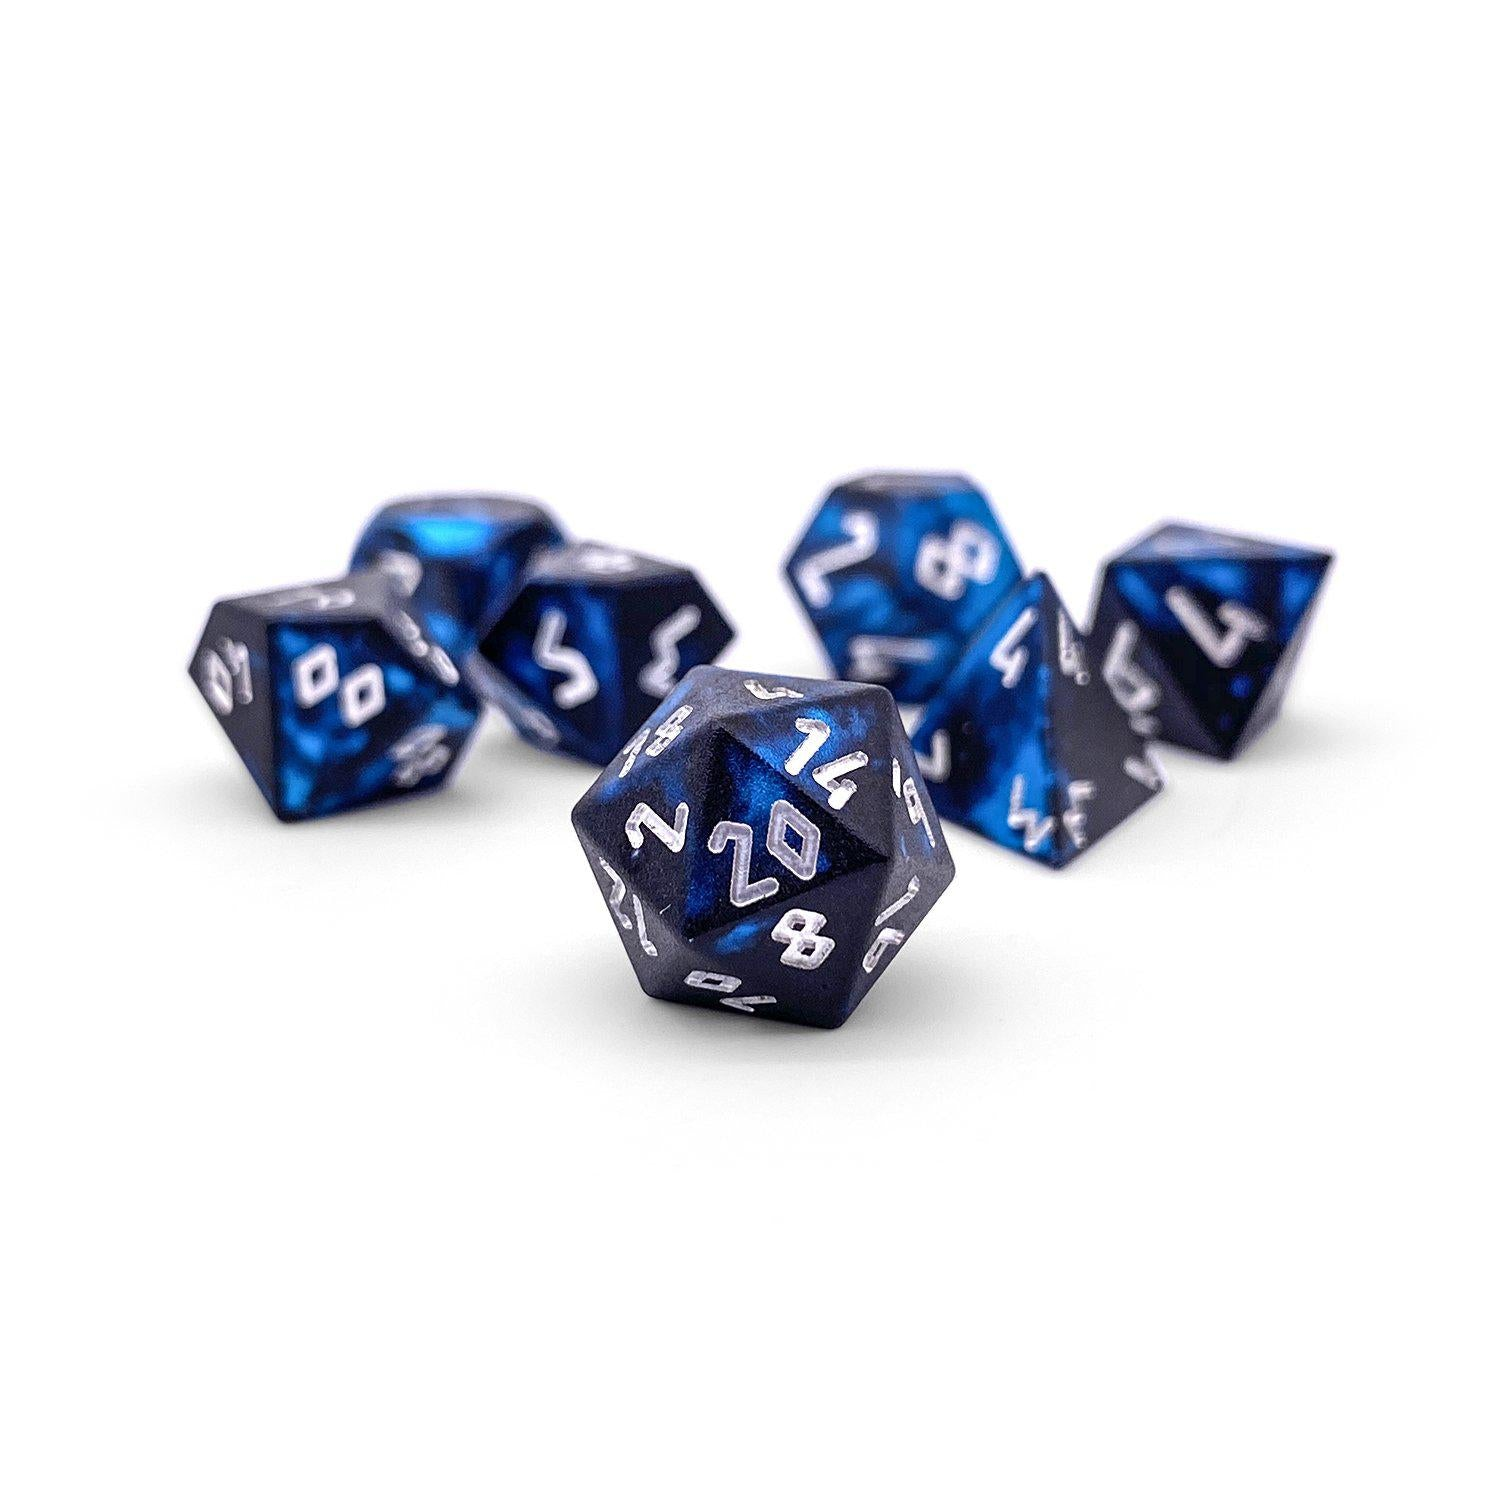 Willow of the Wisp Wondrous Pebble ™ Dice - 10mm 6063 Aircraft Grade Aluminum Mini